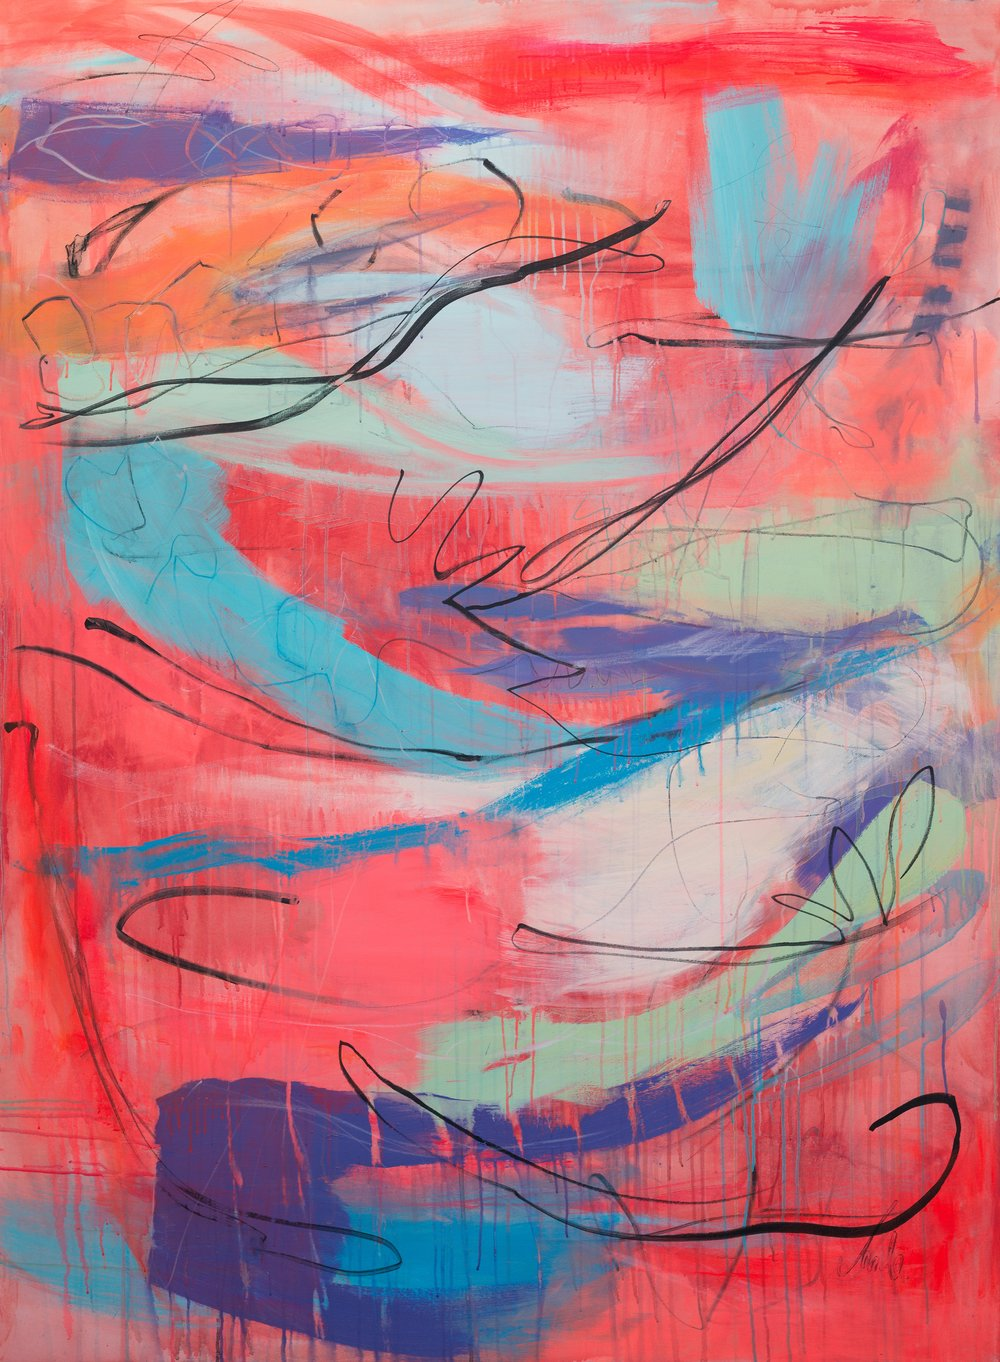 'Gunwalloe 2' (190x140cm) £3,750.00. Visit the  shop  on our website to purchase.